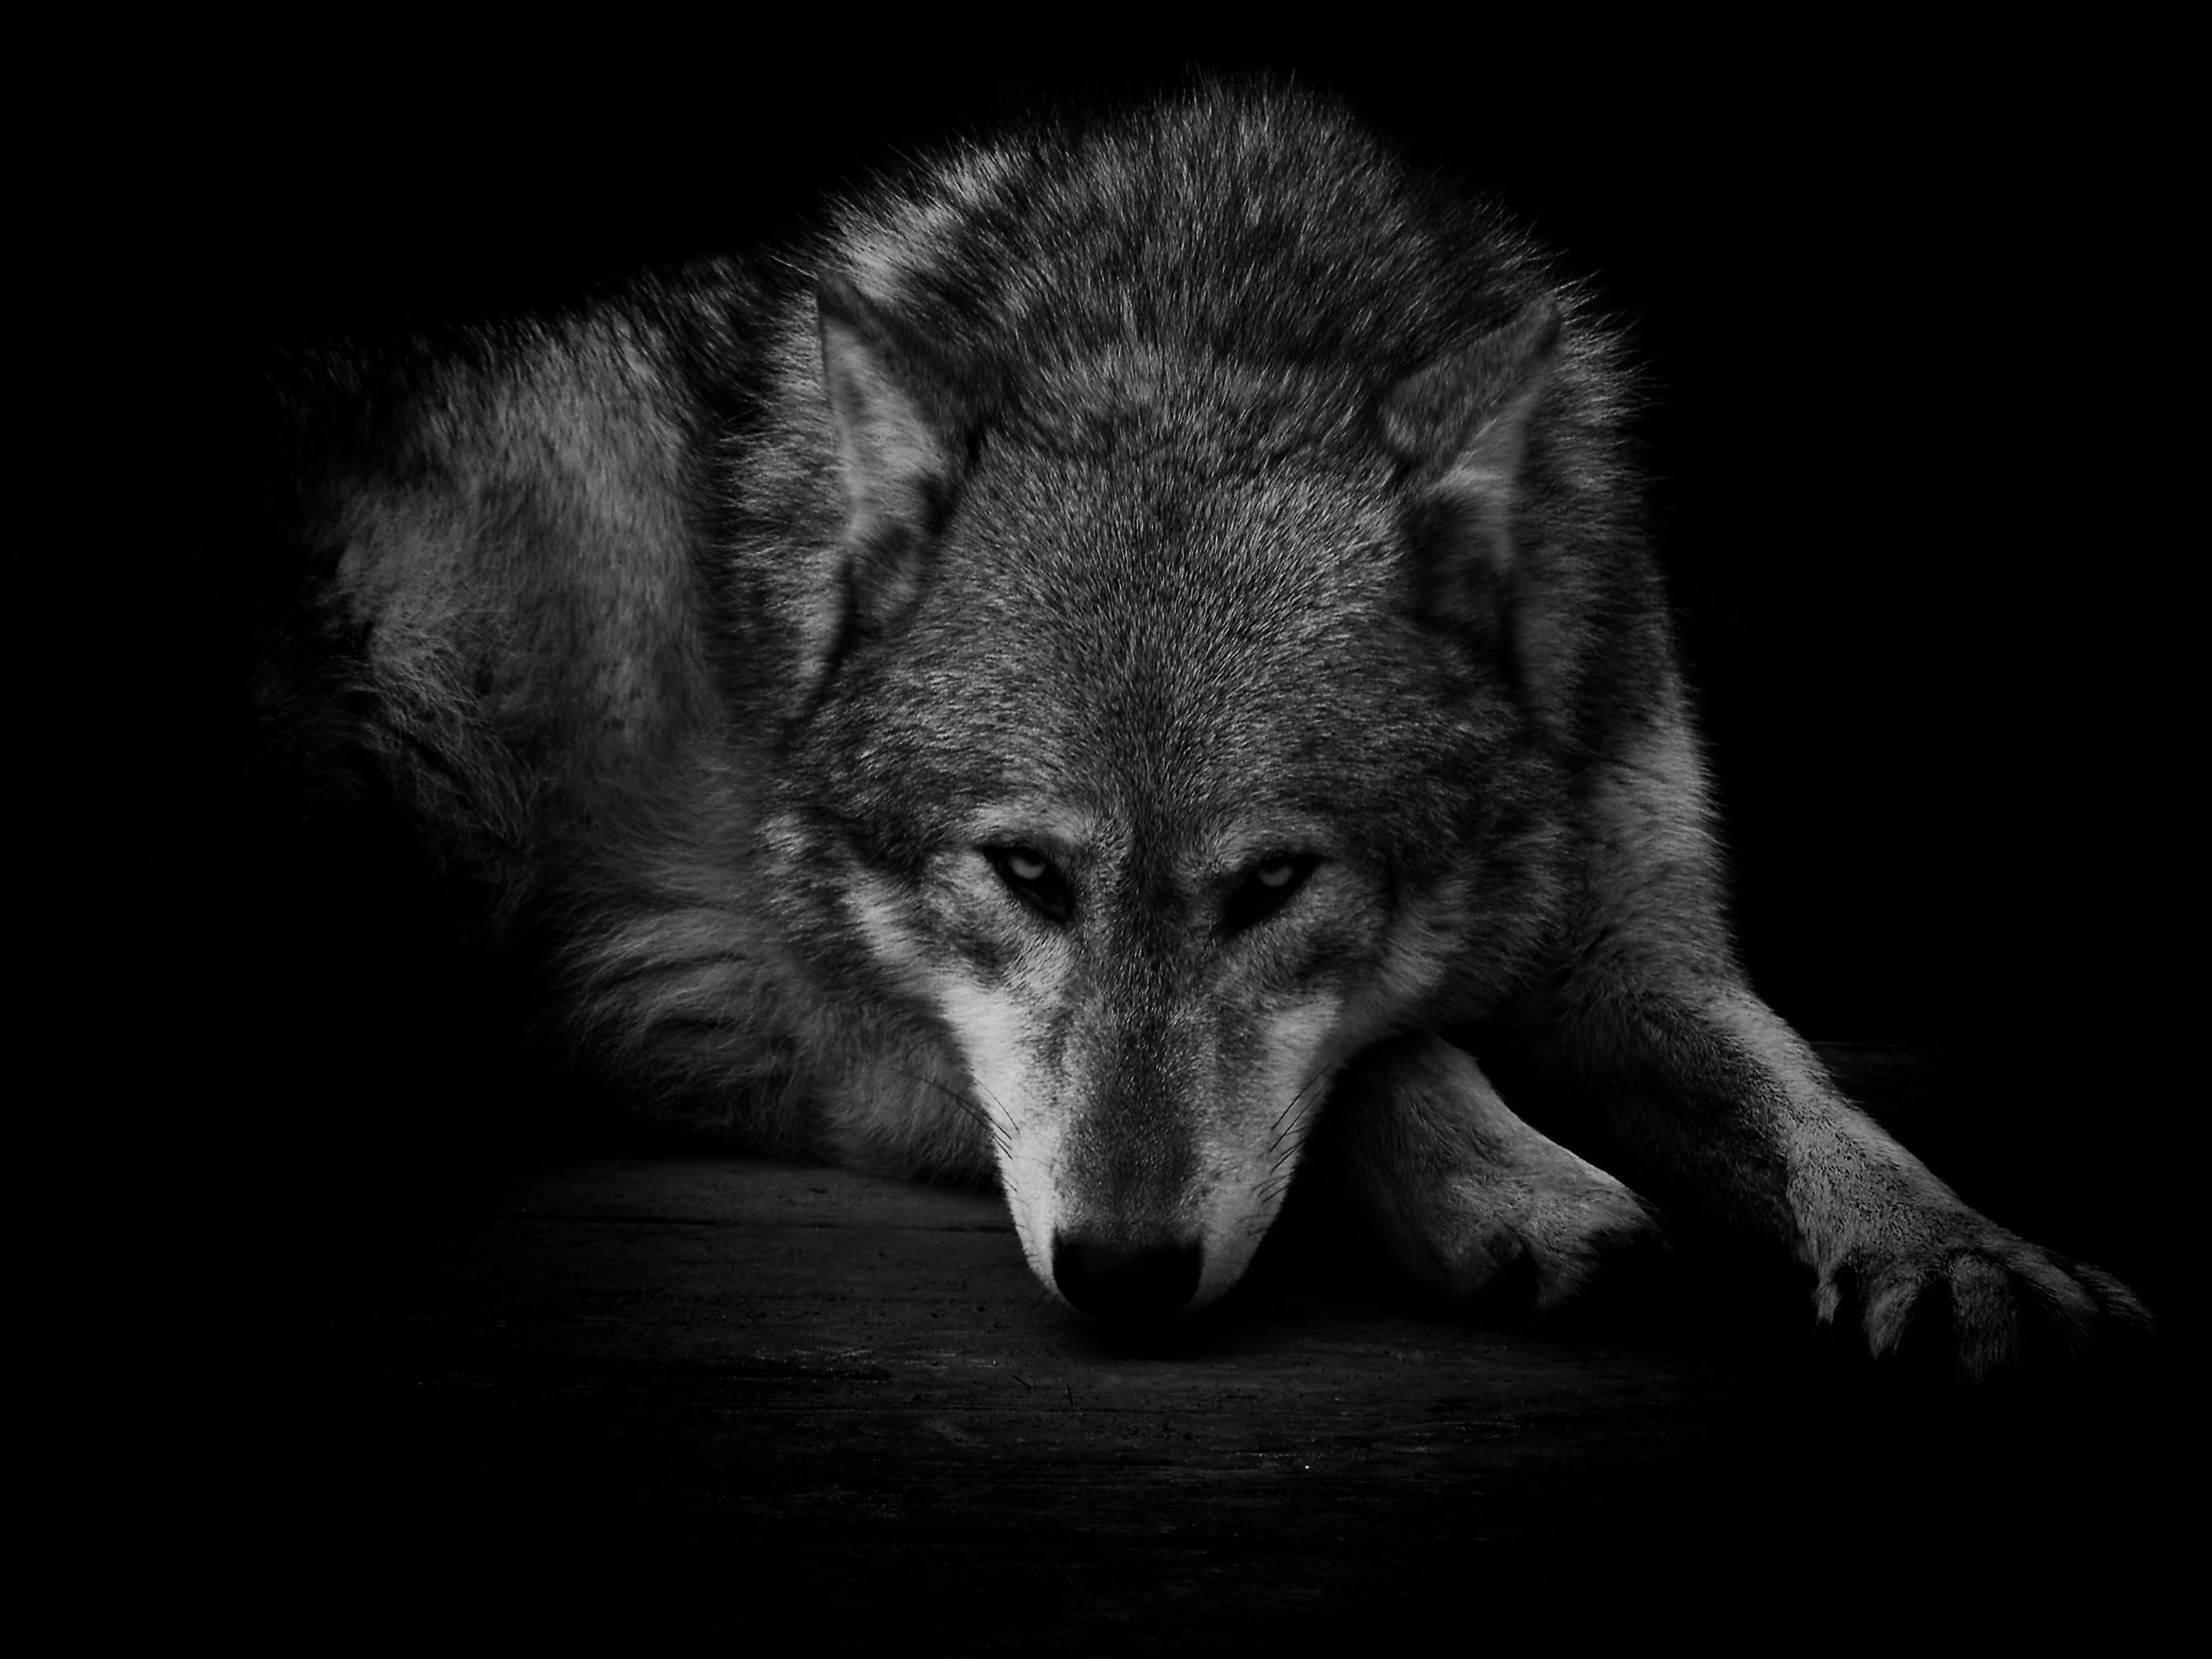 Lone Wolf Wallpapers - Top Free Lone Wolf Backgrounds